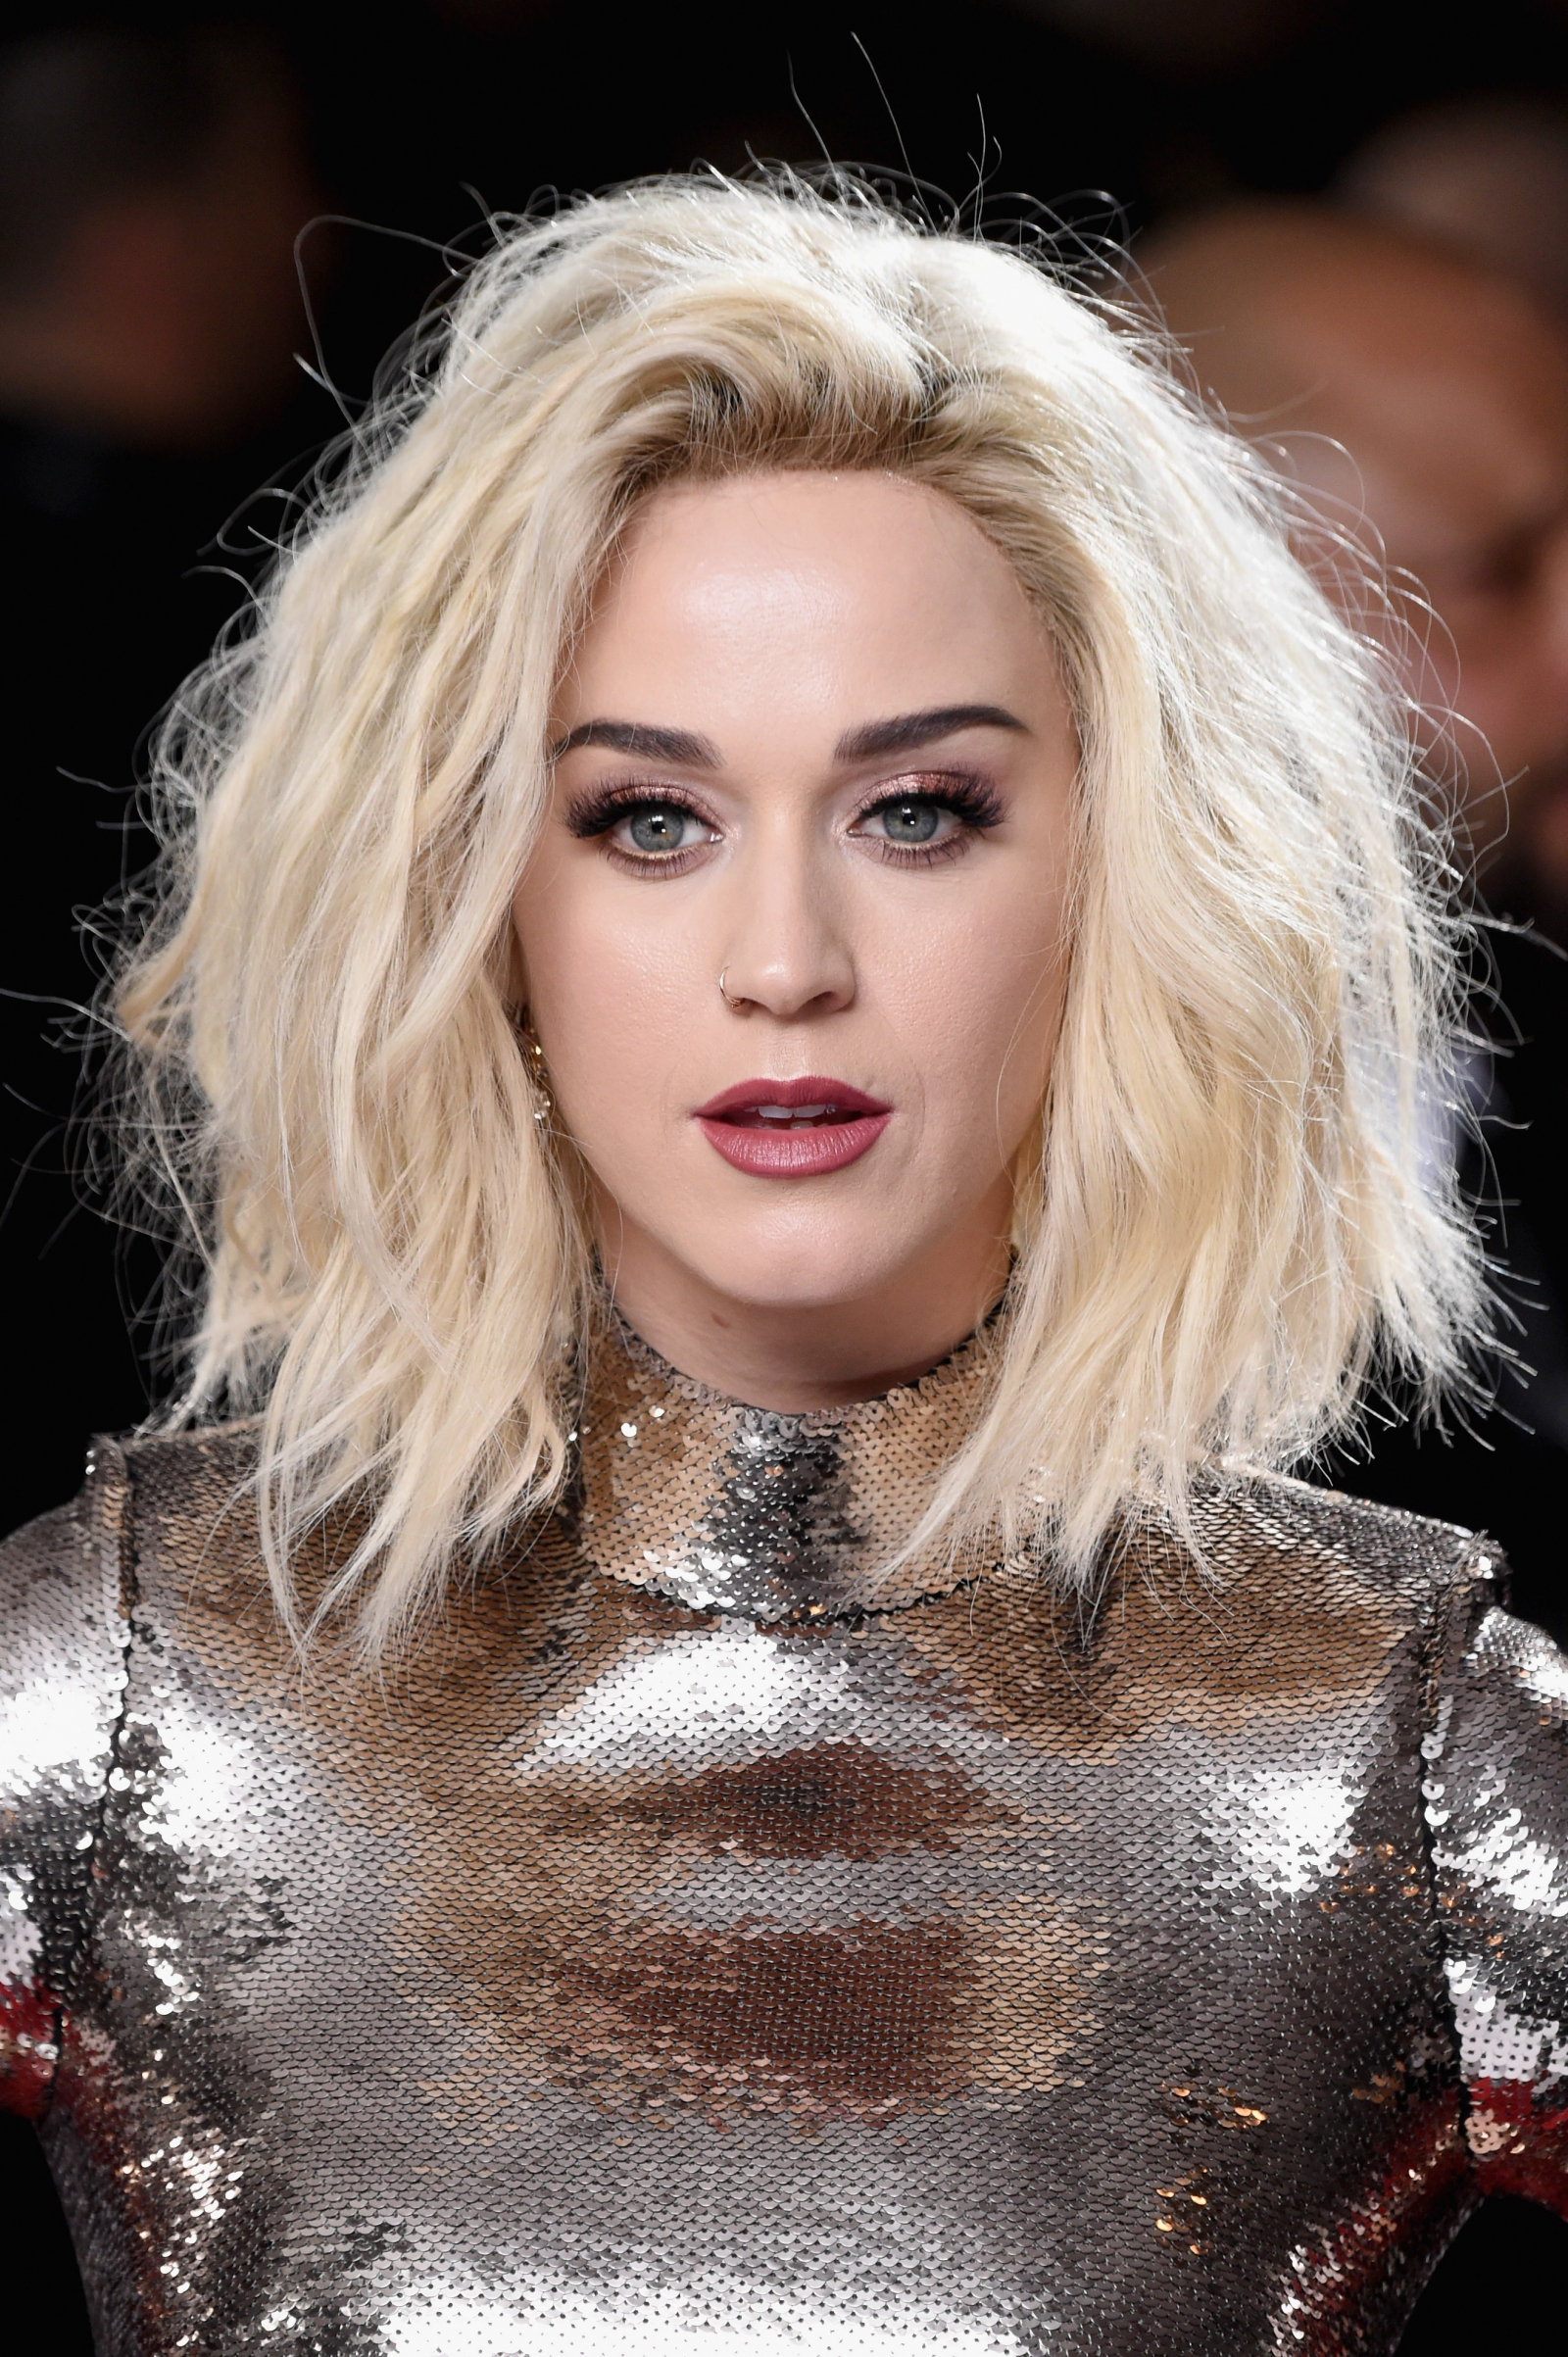 'Disgusted' Britney Spears fans attack Katy Perry over 'mental health' joke at the Grammys 2017